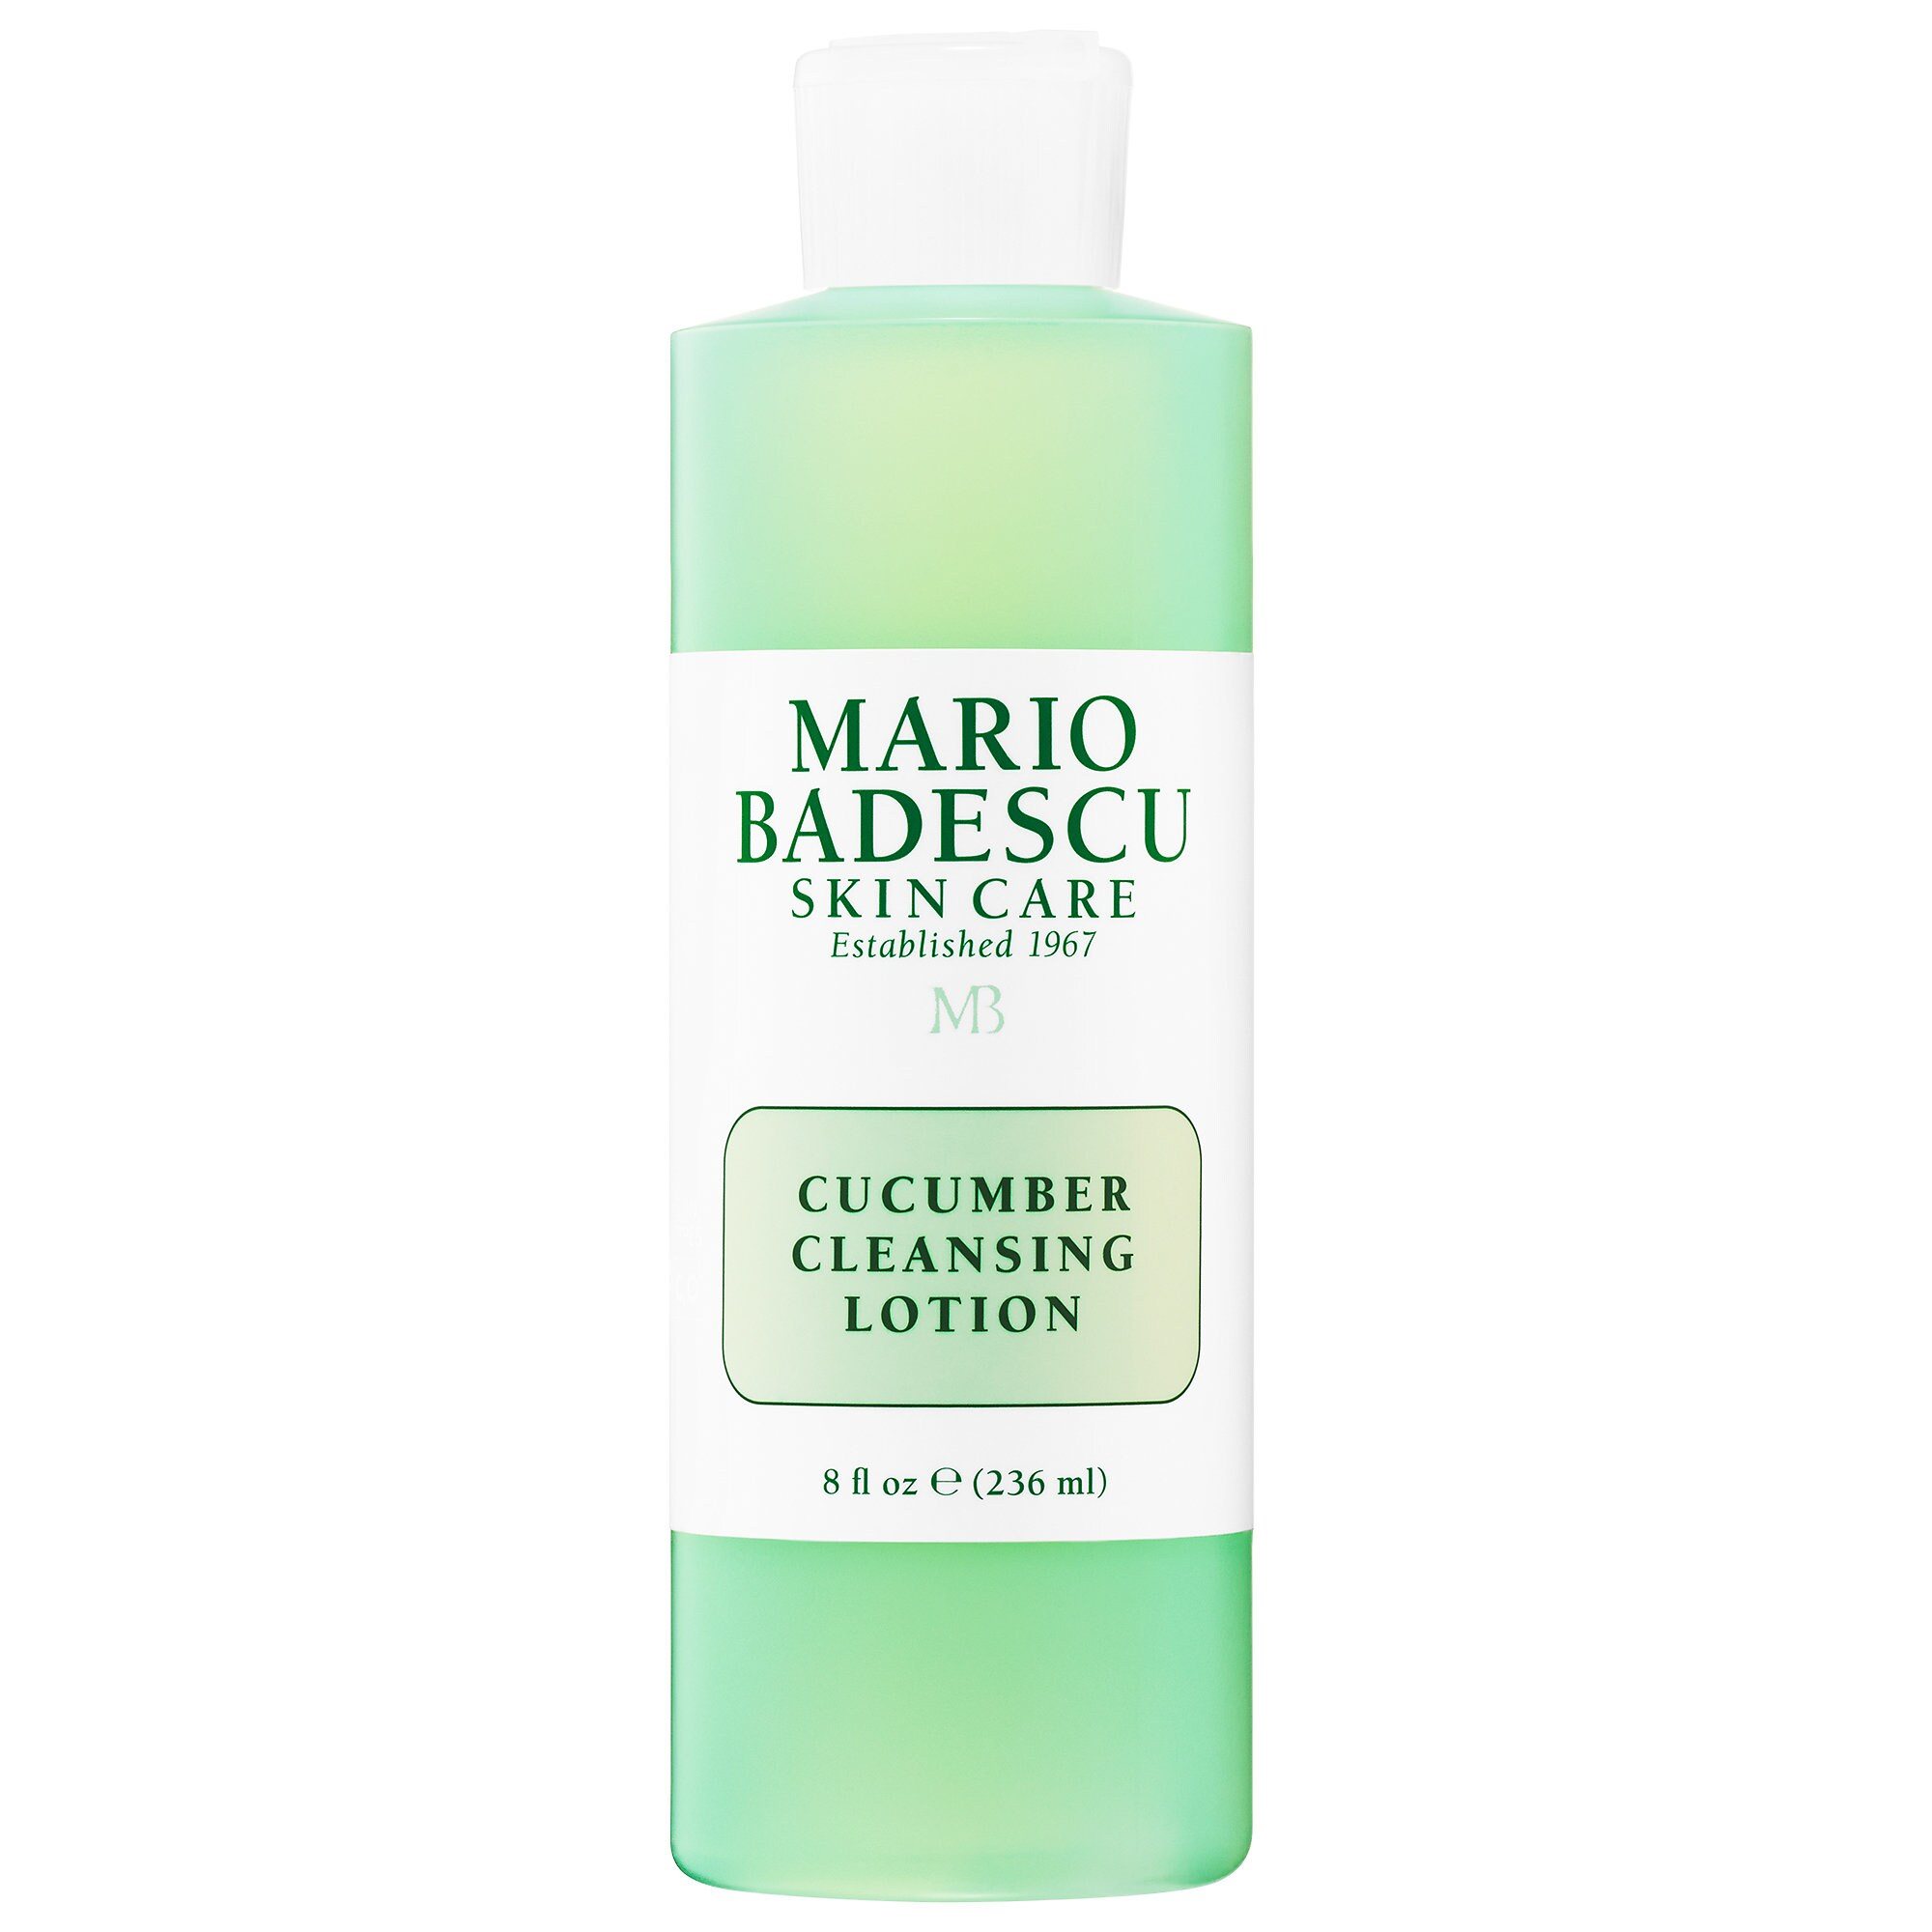 Mario Badescu - Cucumber Cleansing Lotion